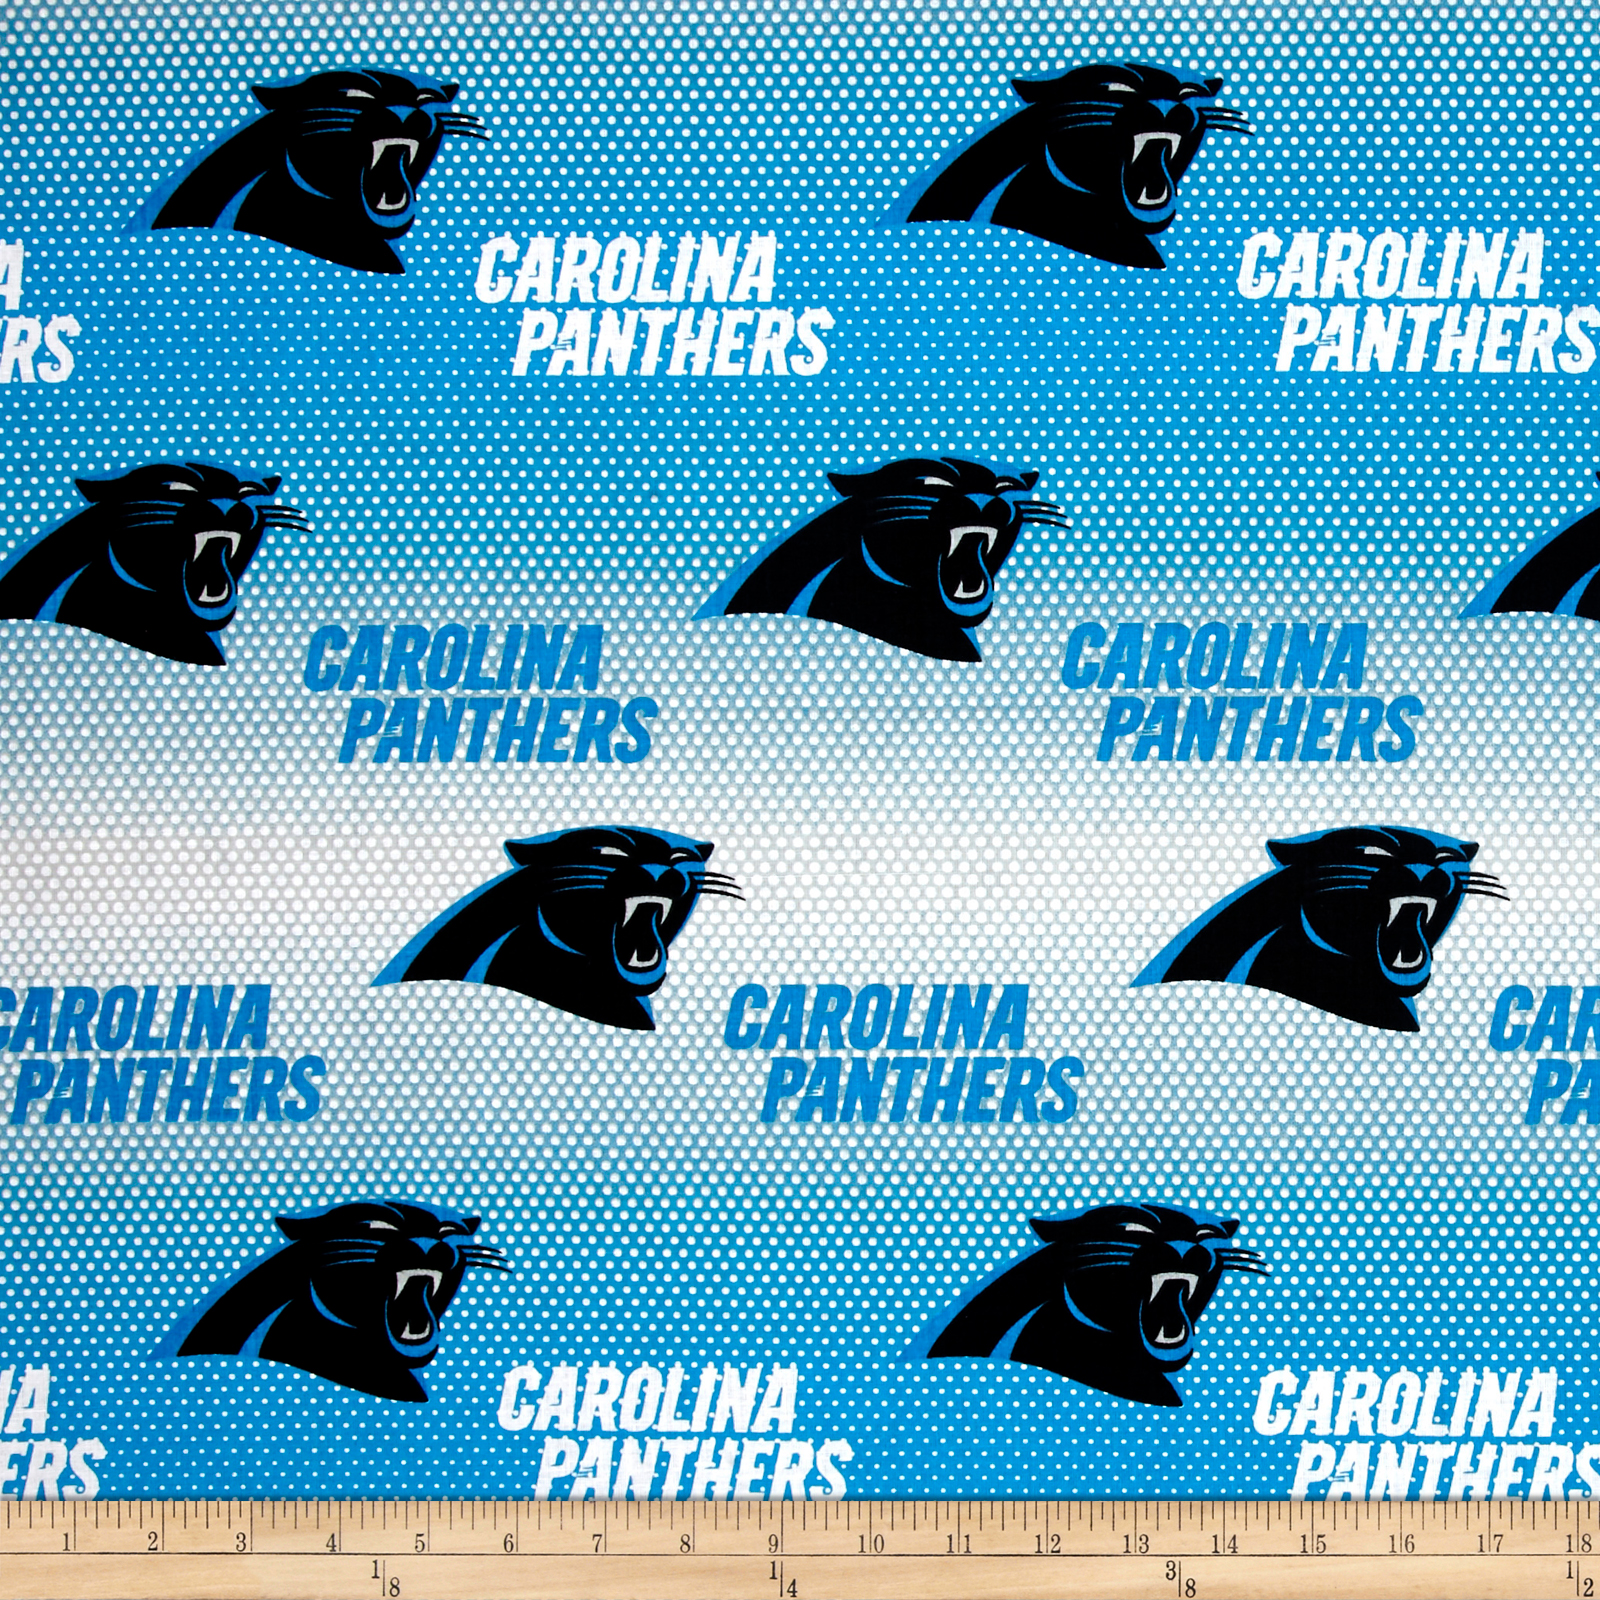 NFL Cotton Broadcloth Carolina Panthers Blue/White Fabric by Fabric Traditions in USA